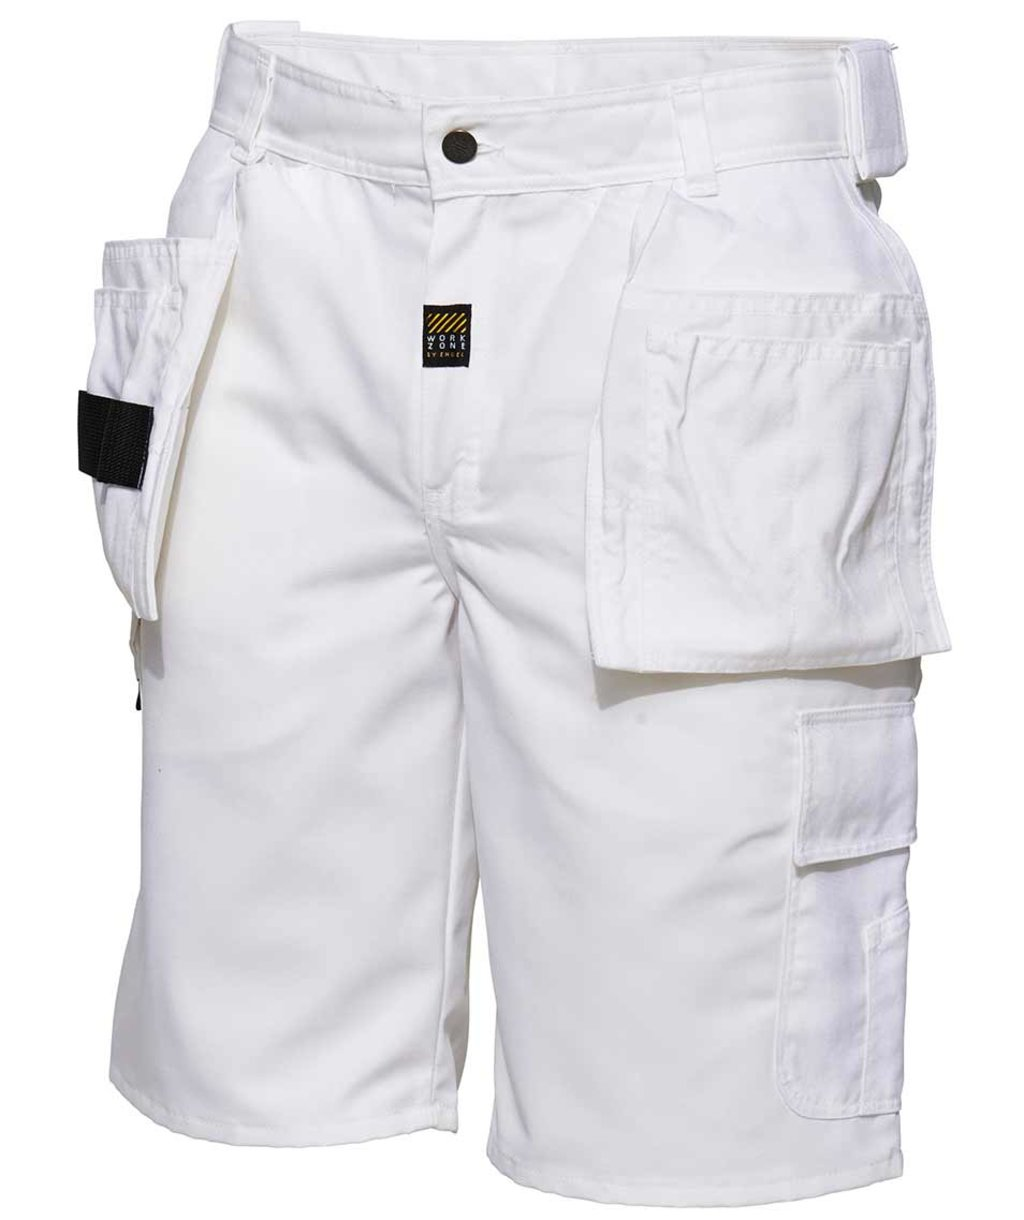 Workzone Casual craftsmens shorts, White